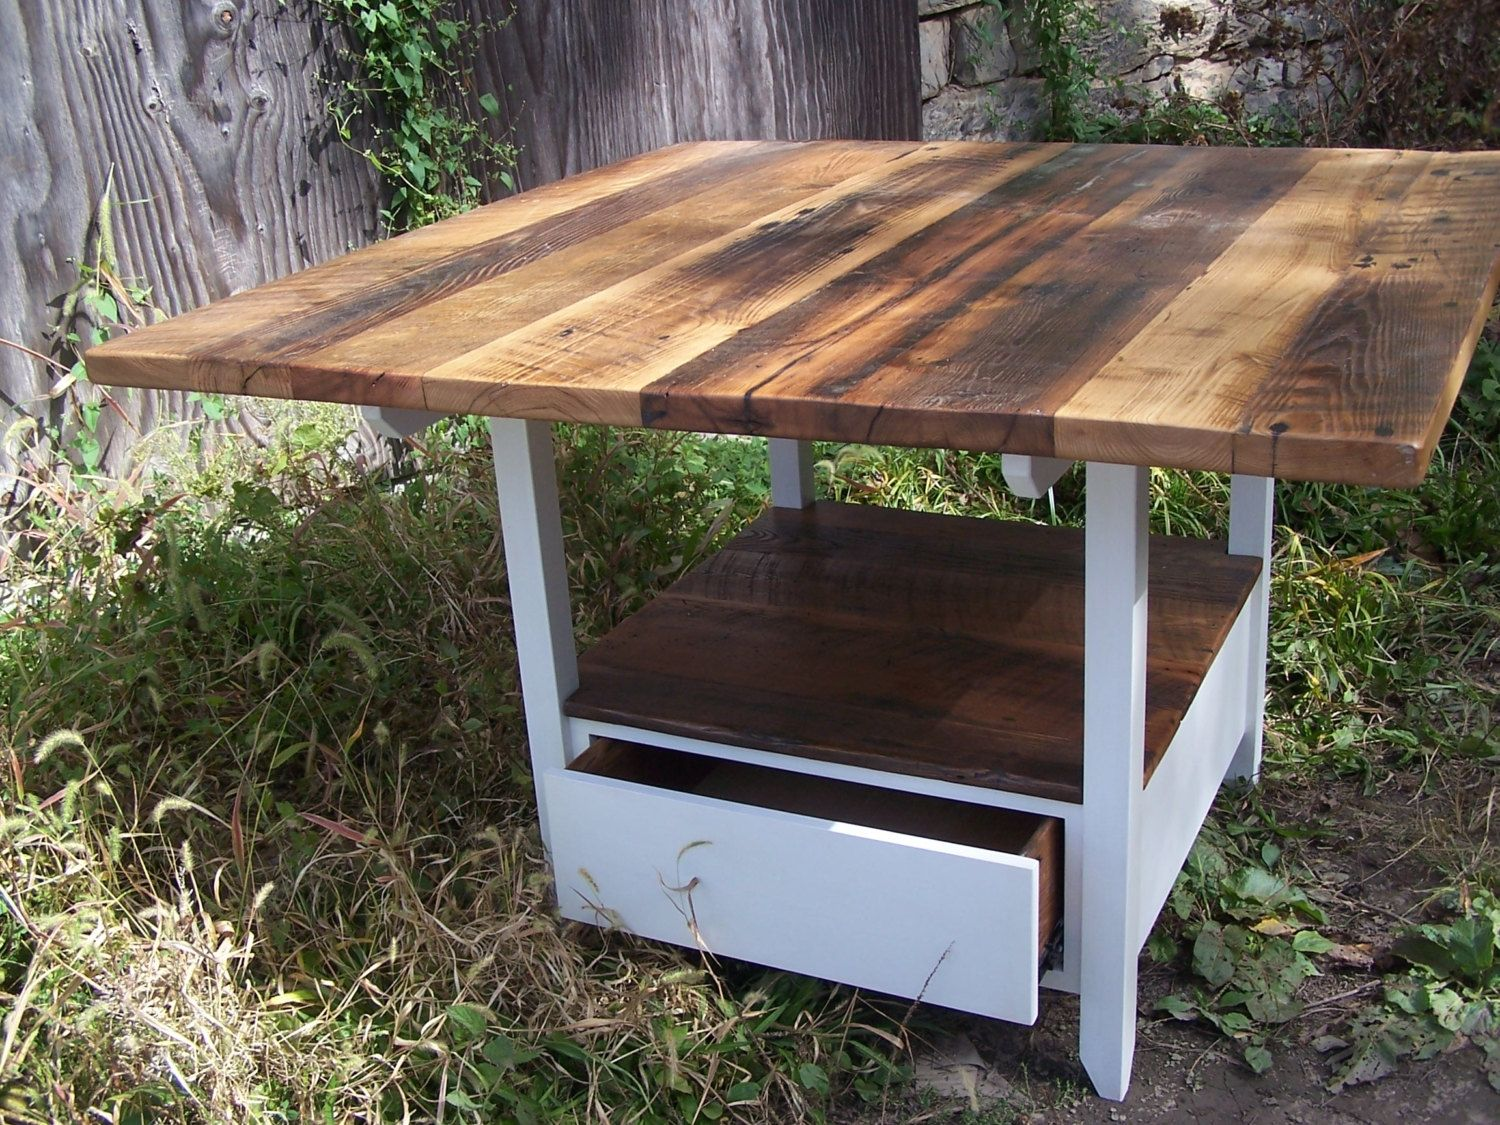 Kitchen Tables With Storage Buy A Handmade Reclaimed Wood Kitchen Table With Storage Base